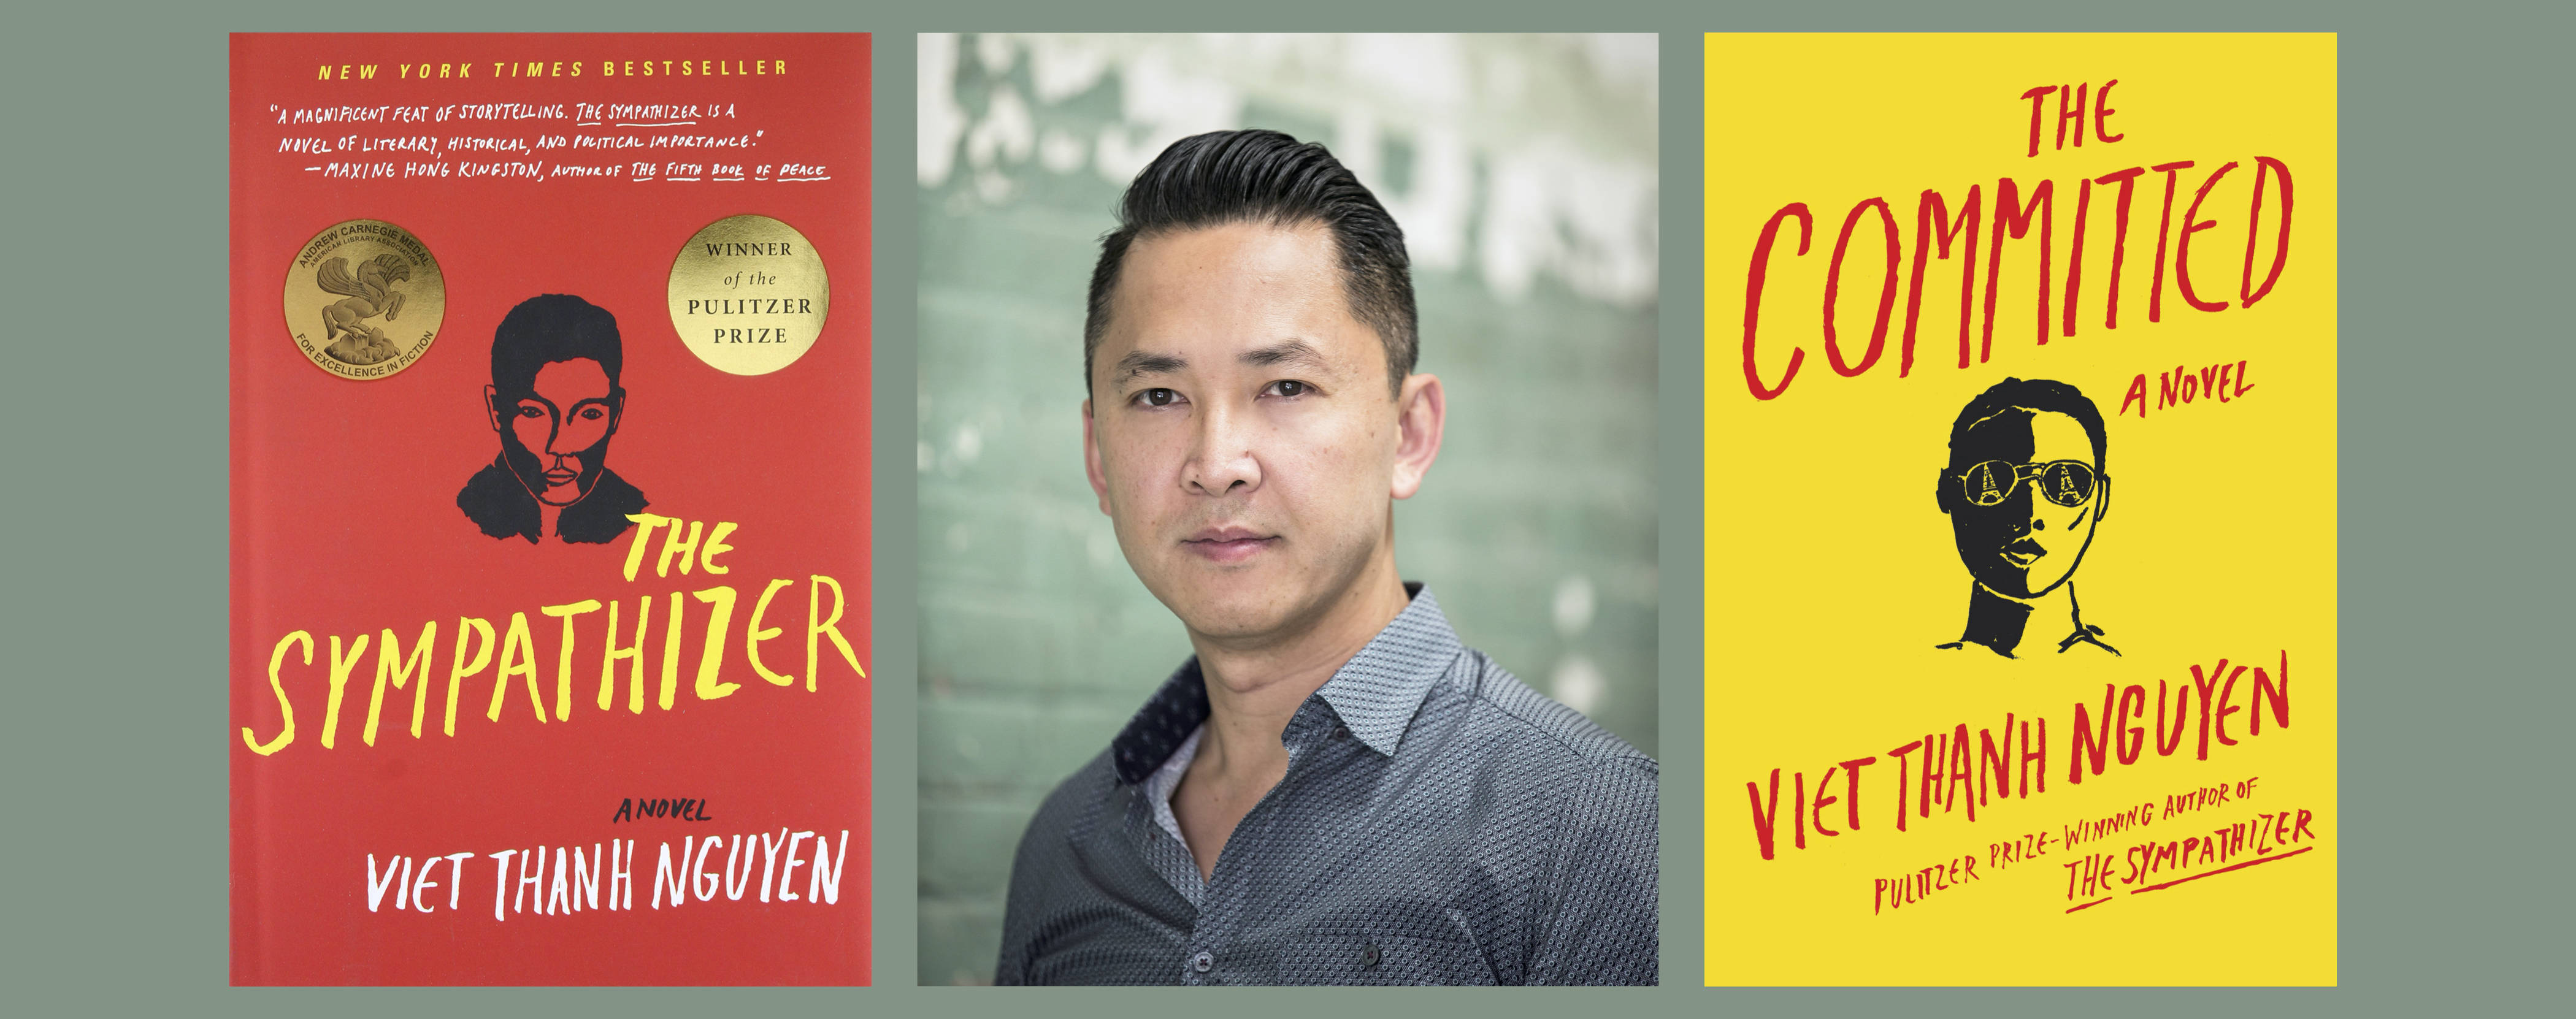 Author Viet Thanh Nguyen (Photo by BeBe Jacobs); Grove/Atlantic